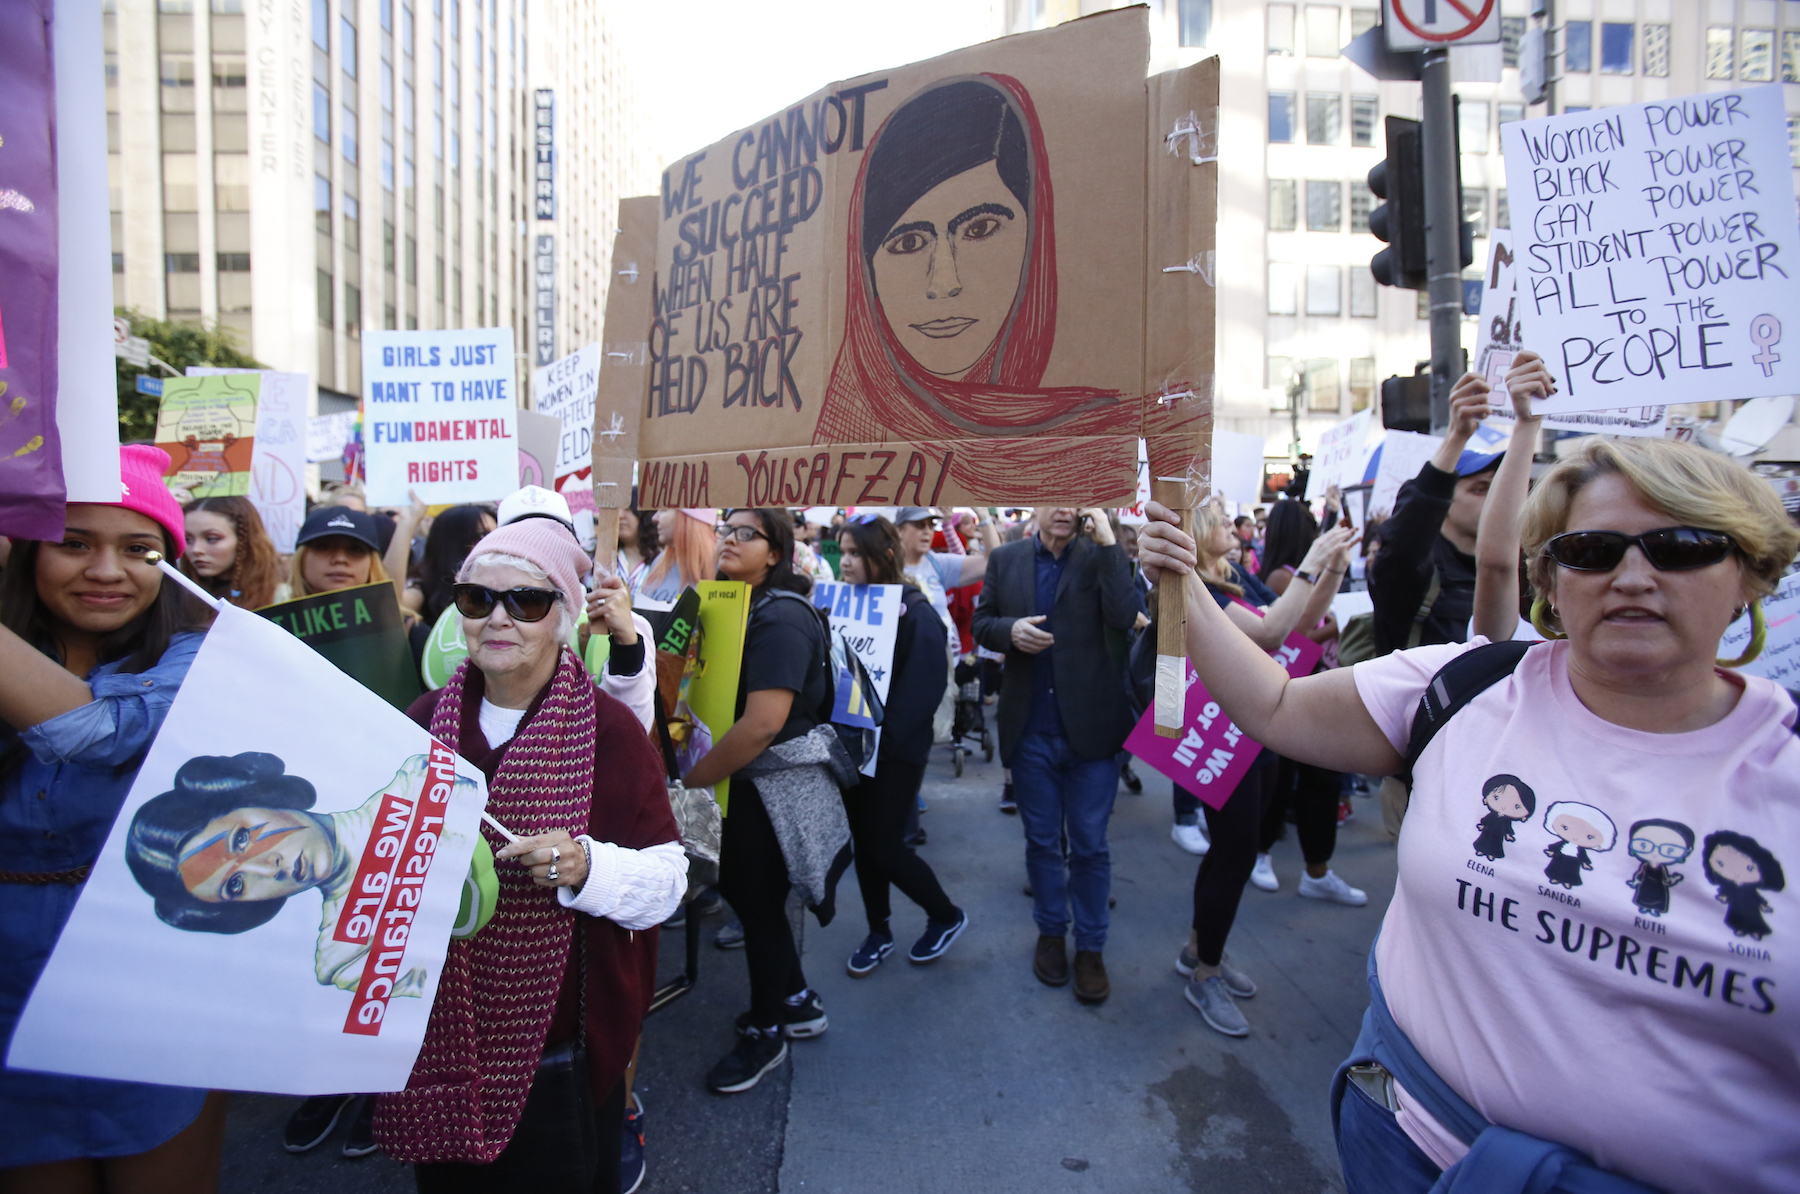 "<div class=""meta image-caption""><div class=""origin-logo origin-image ap""><span>AP</span></div><span class=""caption-text"">Demonstrators hold signs during the Women's March in Los Angeles on Saturday, Jan. 19, 2019. (AP Photo/Damian Dovarganes)</span></div>"